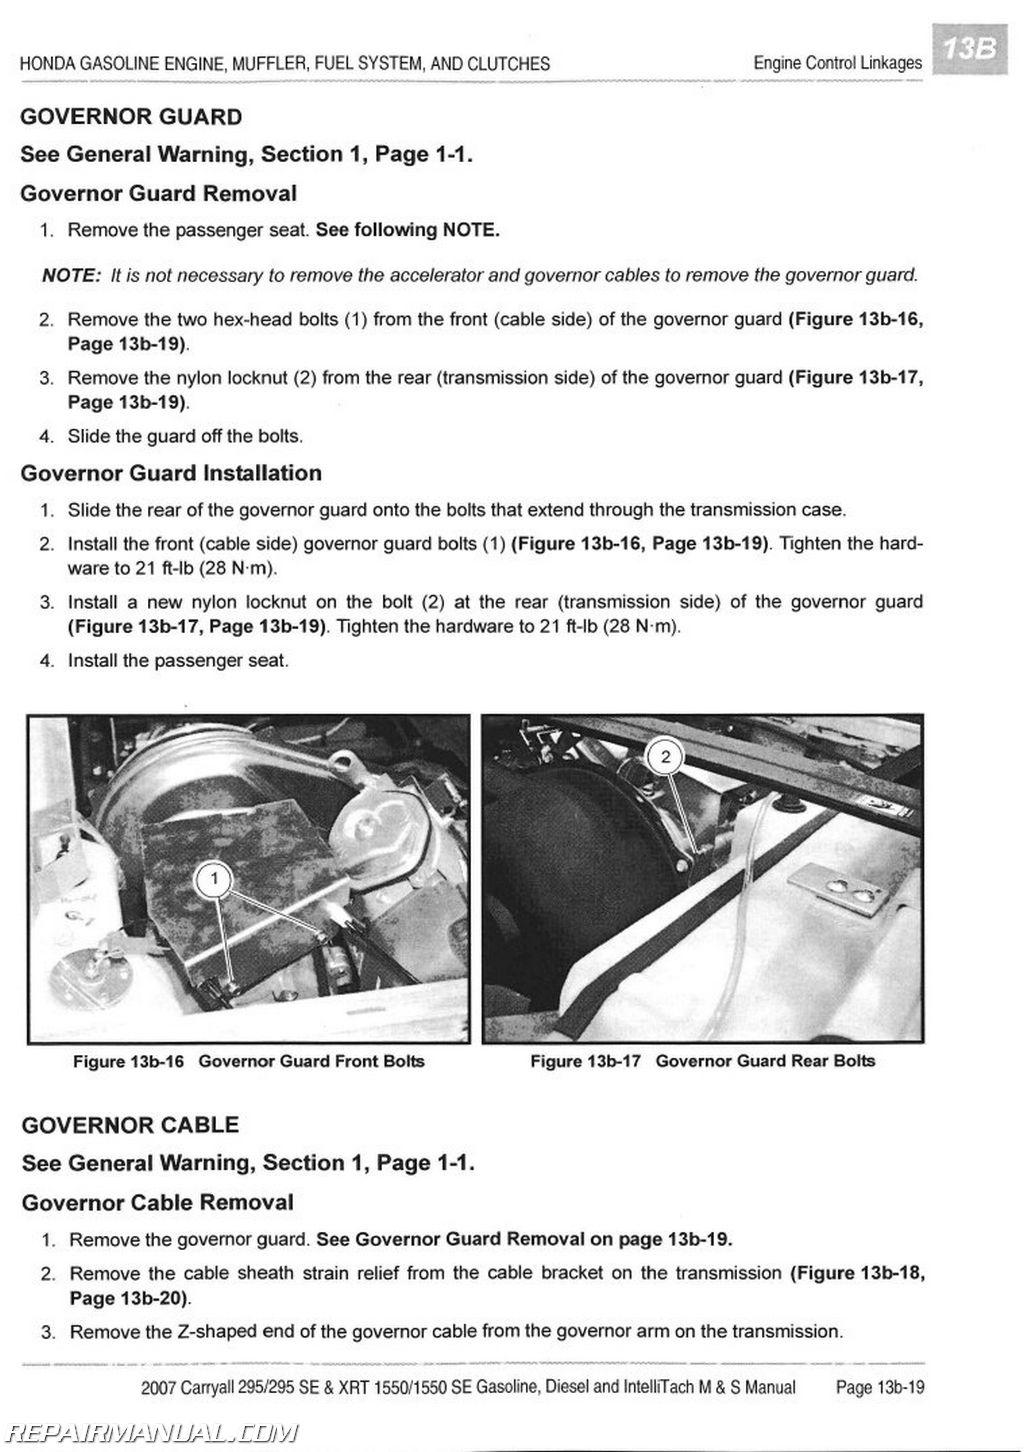 hight resolution of 2007 club car carryall service manual 295 295se xrt 1550 1550se gas diesel intellitach homologated